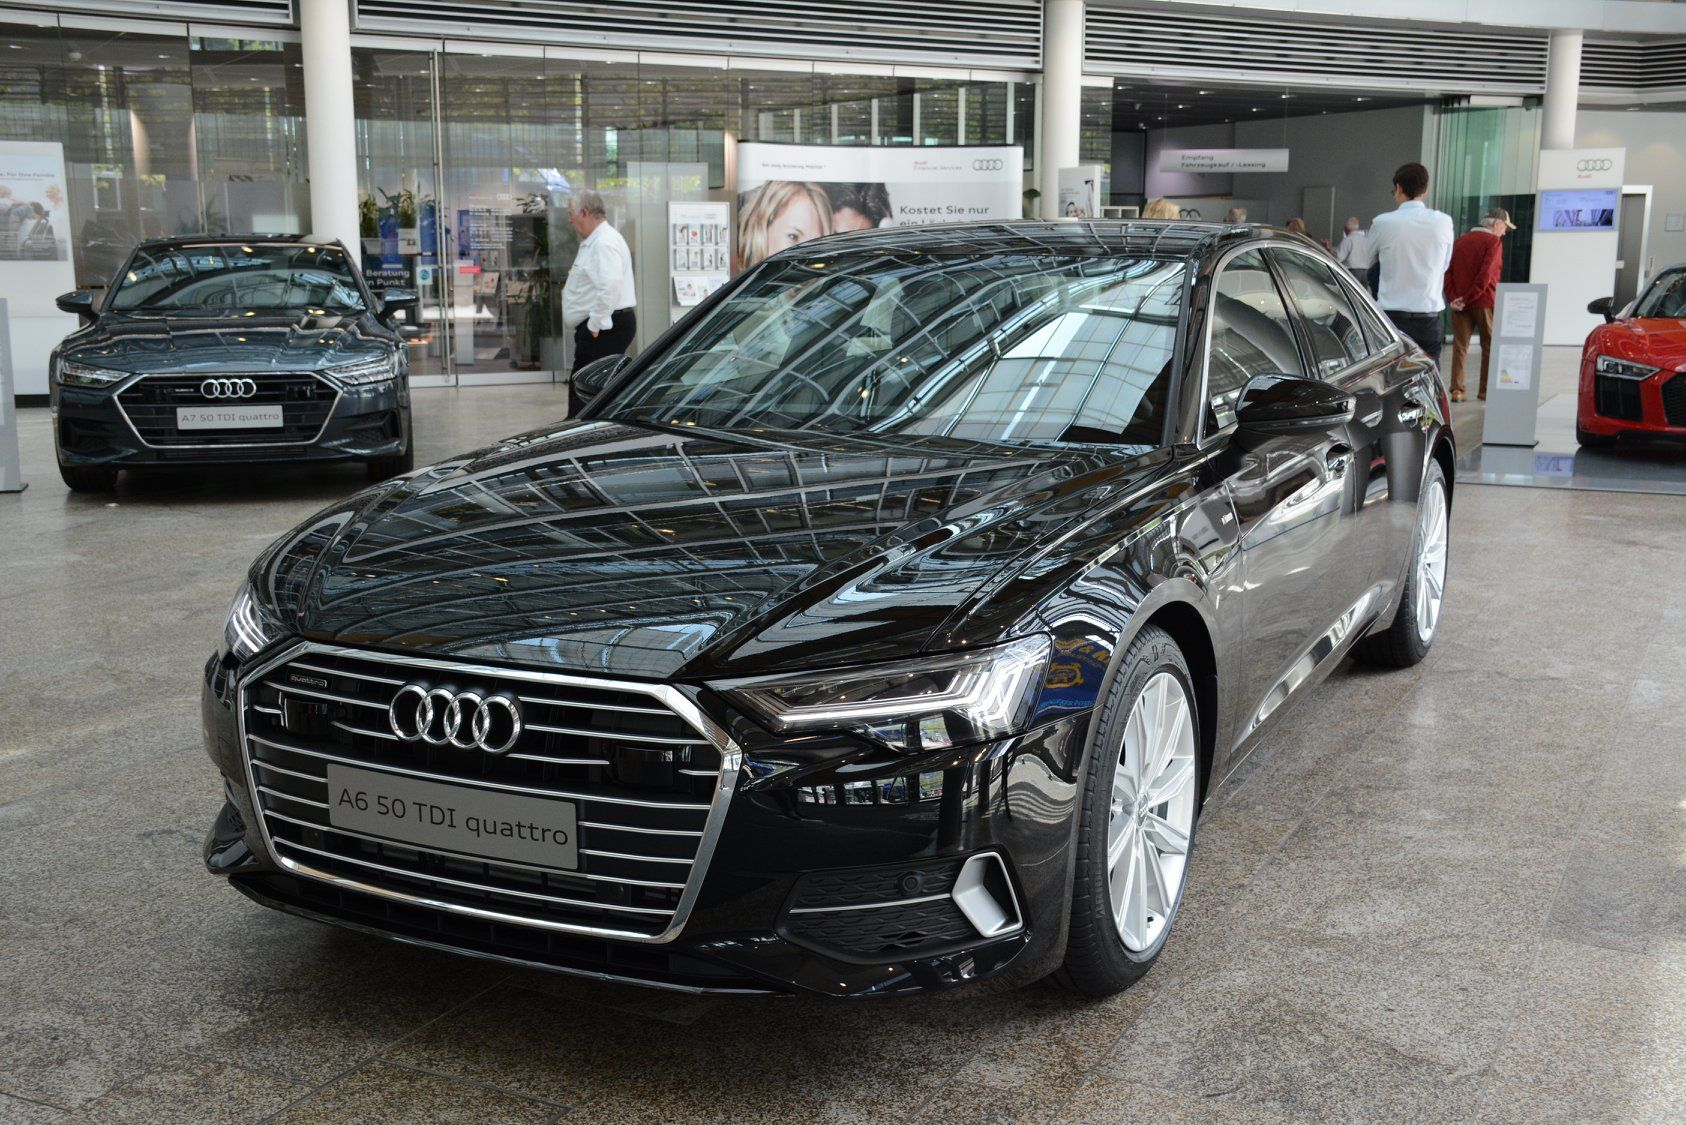 New Audi A6 In Mythos Black On Display At Audi Forum Audi A6 Audi Black